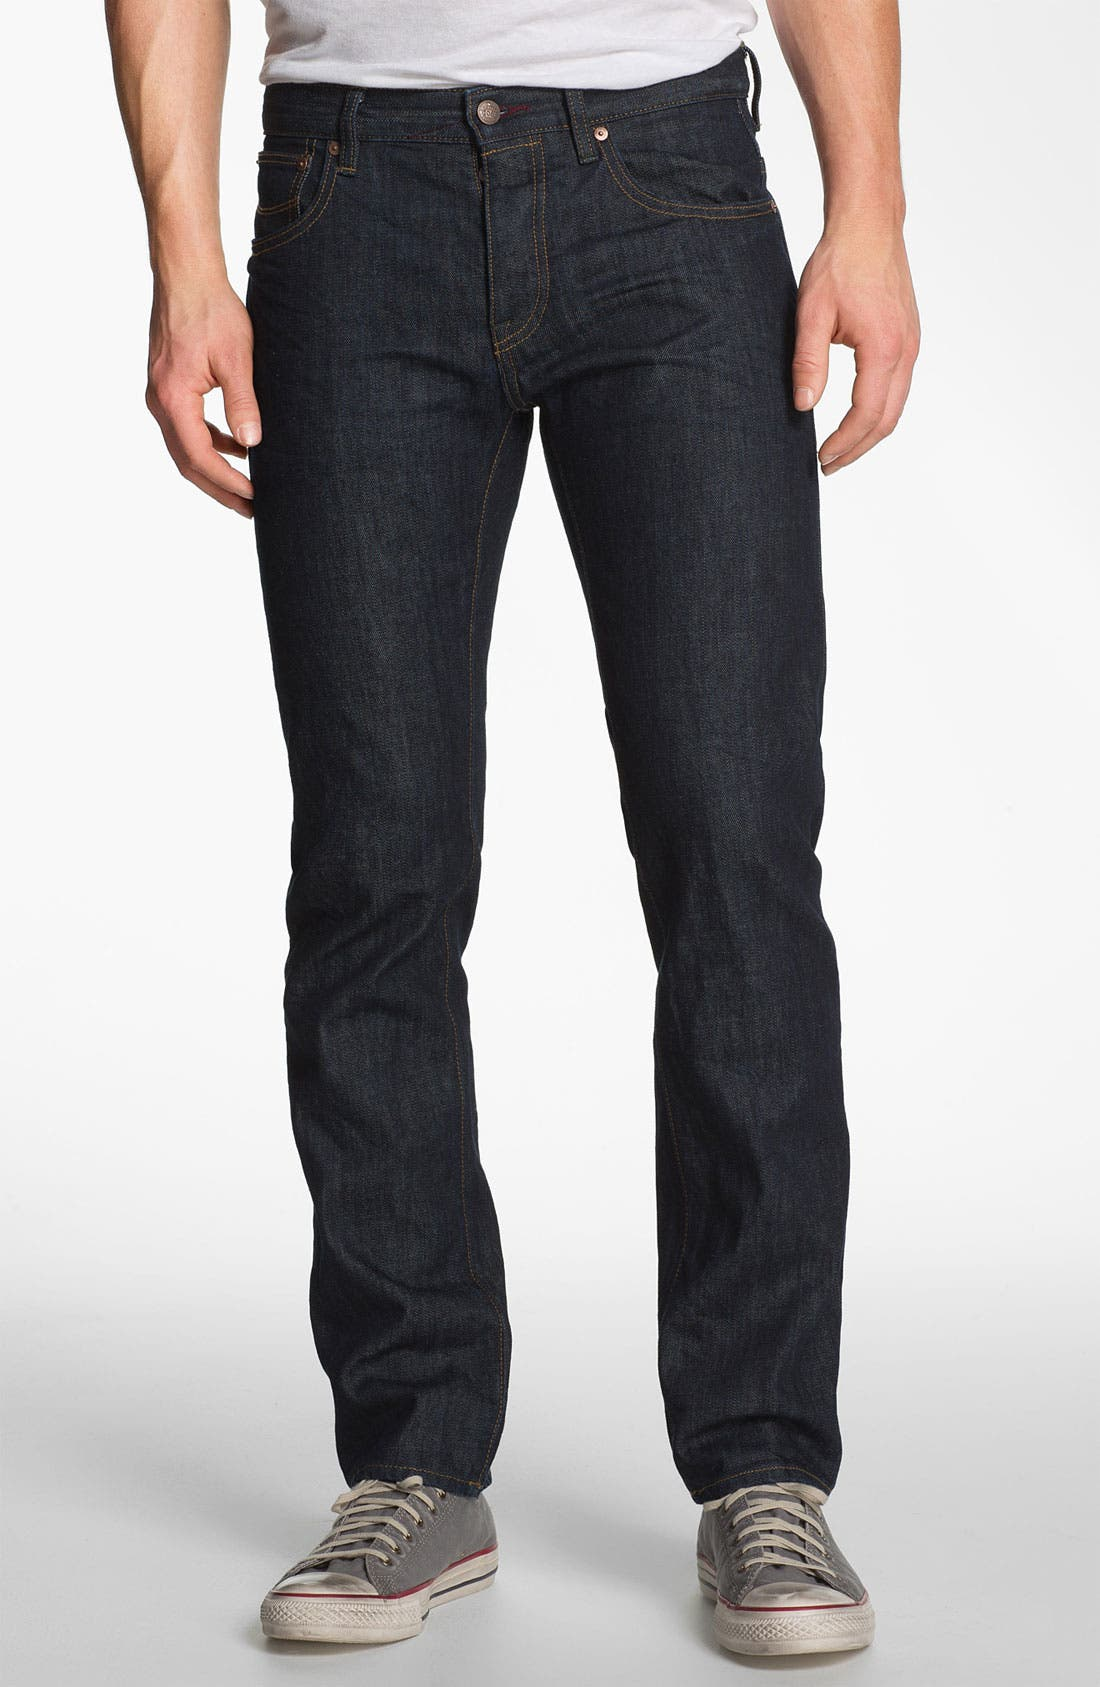 Alternate Image 1 Selected - Ted Baker London 'Cabrie' Classic Fit Jeans